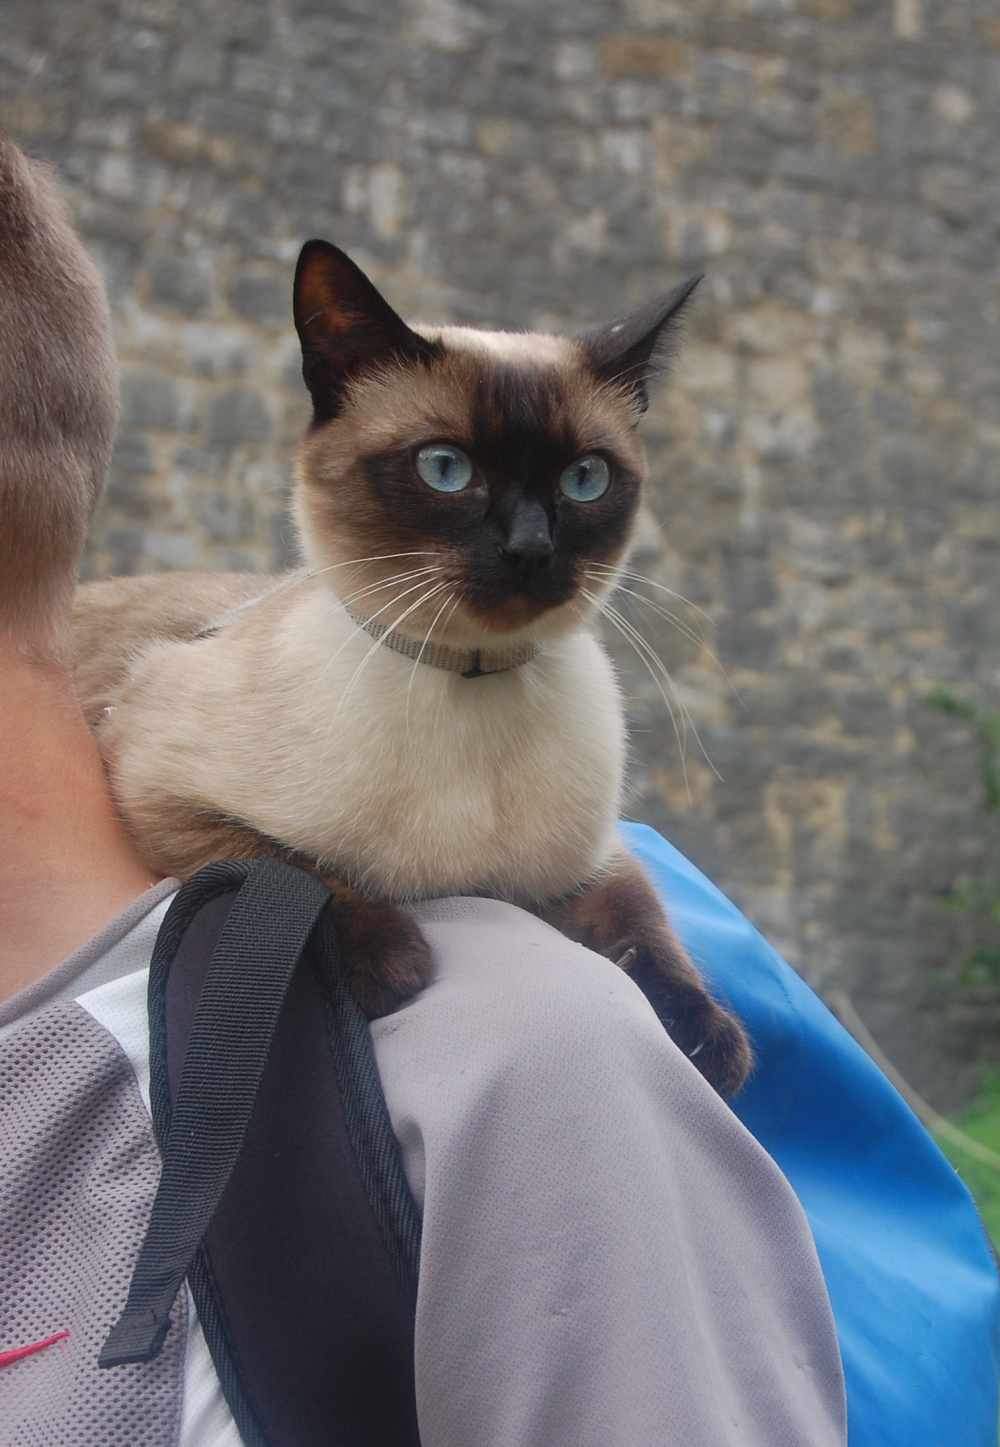 Cat riding his human's shoulder at a fair